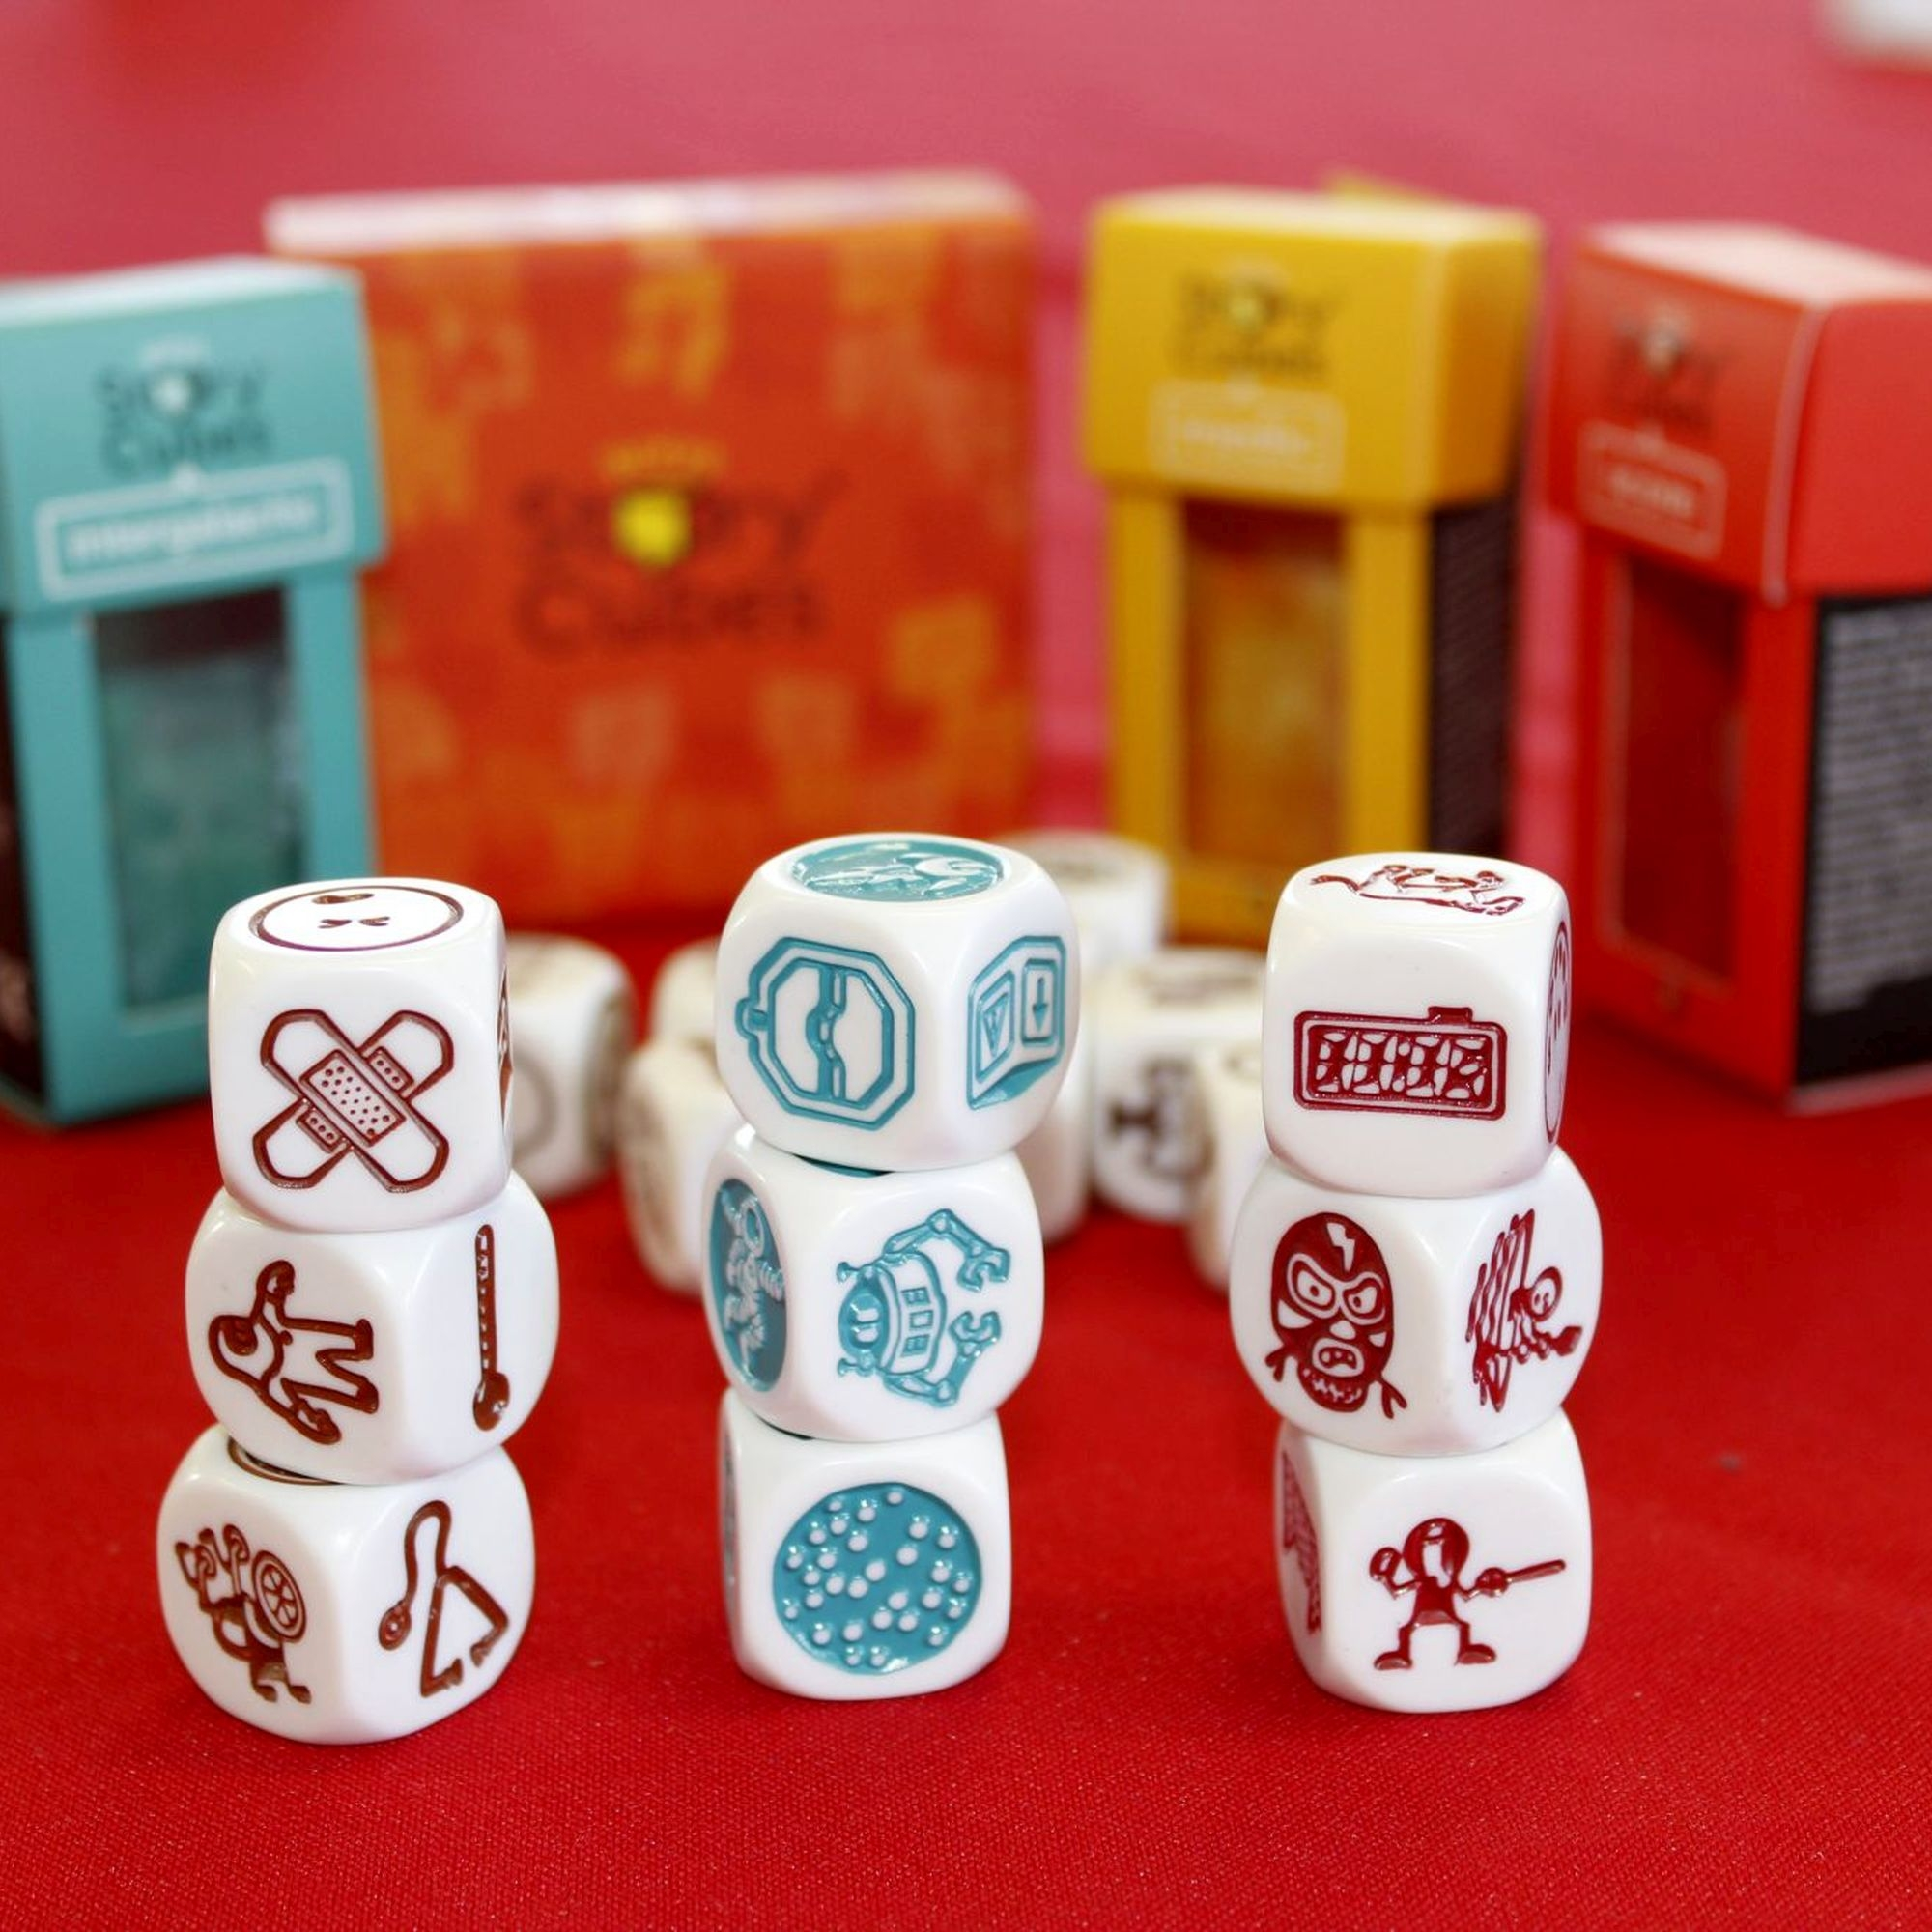 Intergalactic Rorys Story Cubes